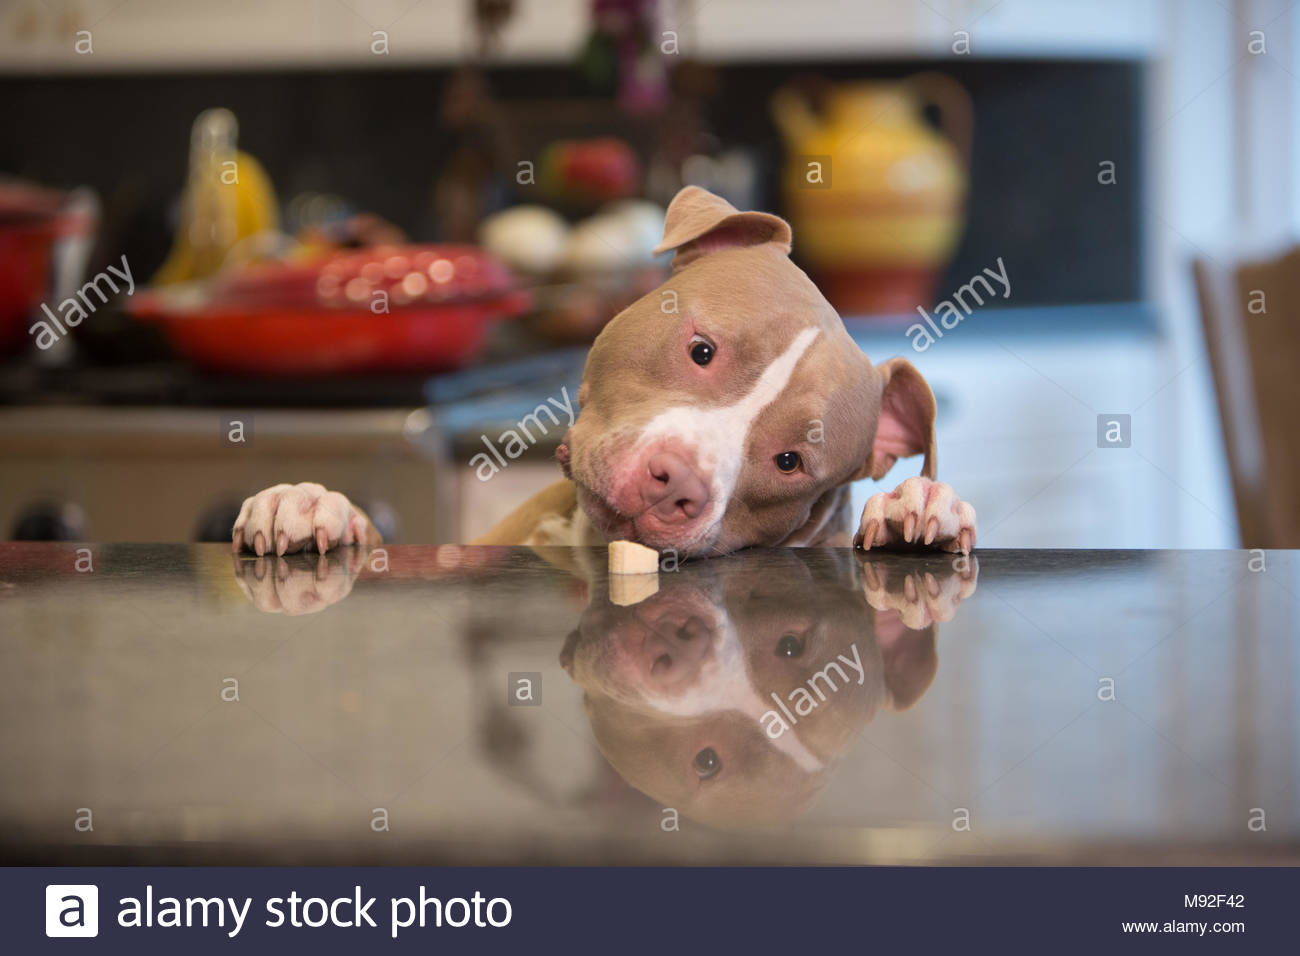 brown and white pit bull dog with paws on kitchen counter about to eat a banana - Stock Image